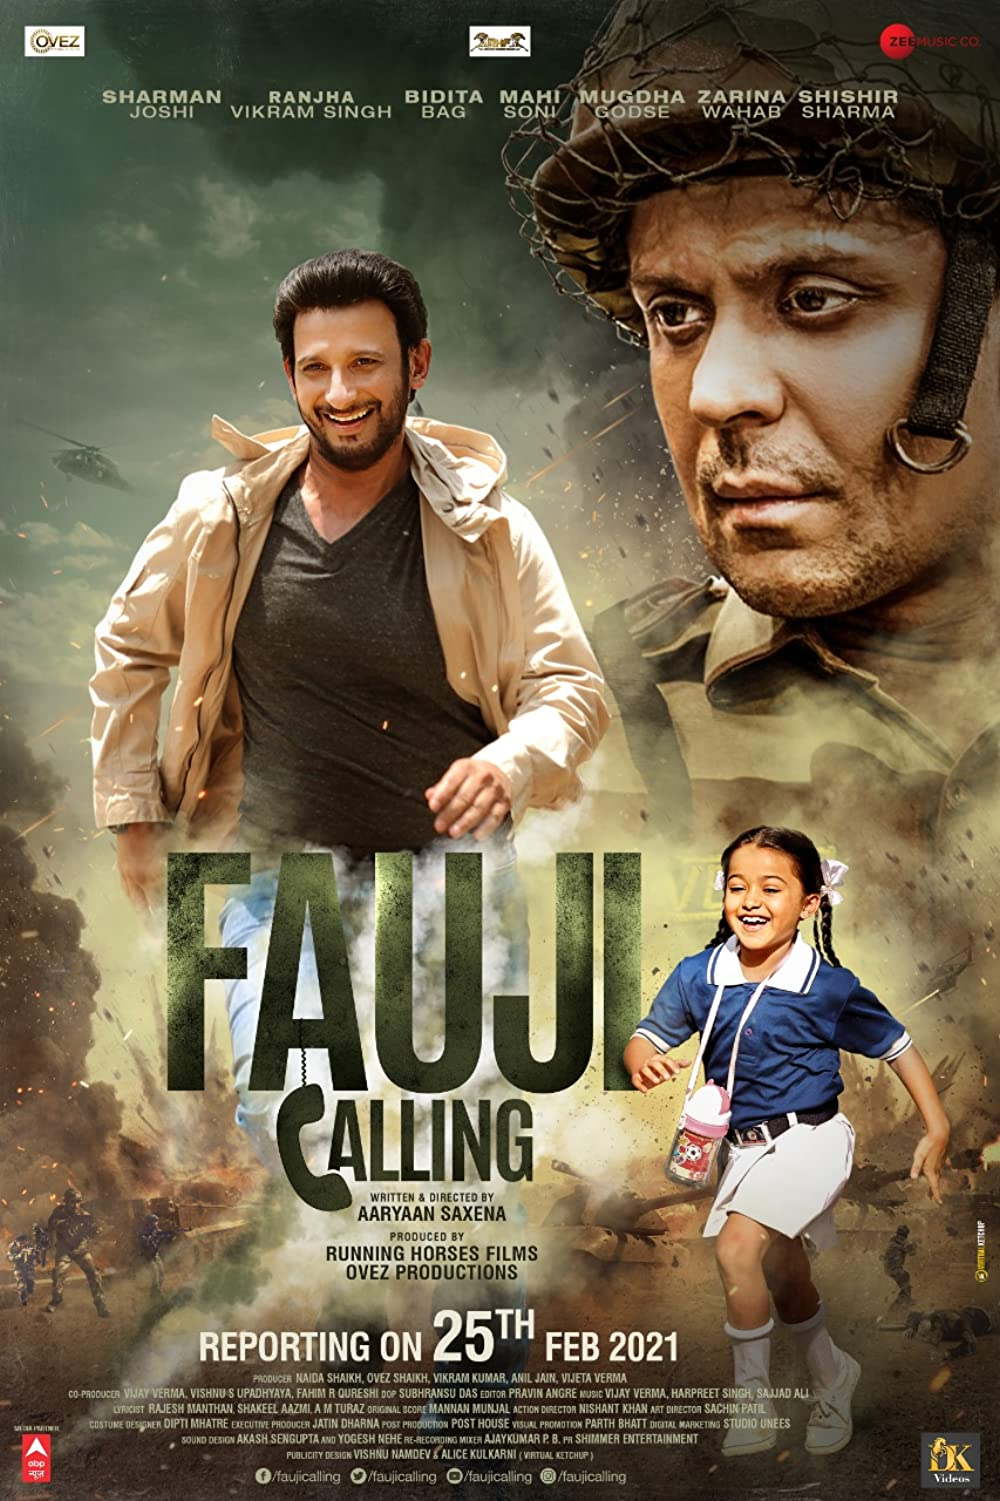 Fauji calling (2021) Hindi Full Movie pDVDRip